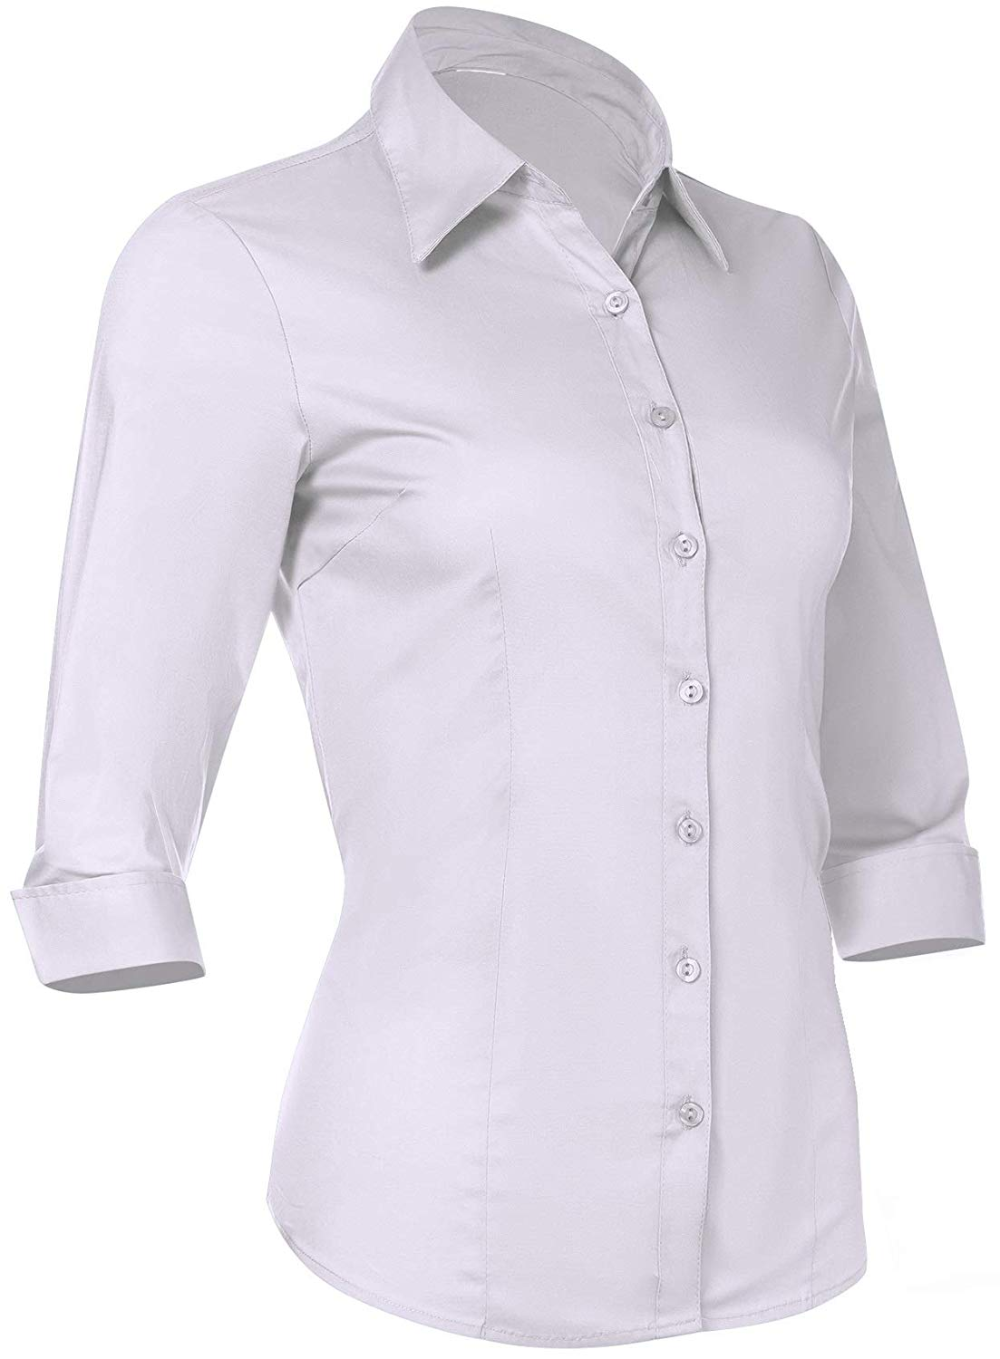 Free 2 Day Shipping Buy Pier 17 Button Down Shirts For Women 3 4 Sleeve Fitted Dress Shirt And Blouses Wor Fitted Dress Shirts Shirt Dress Perfect White Shirt [ 1359 x 1000 Pixel ]